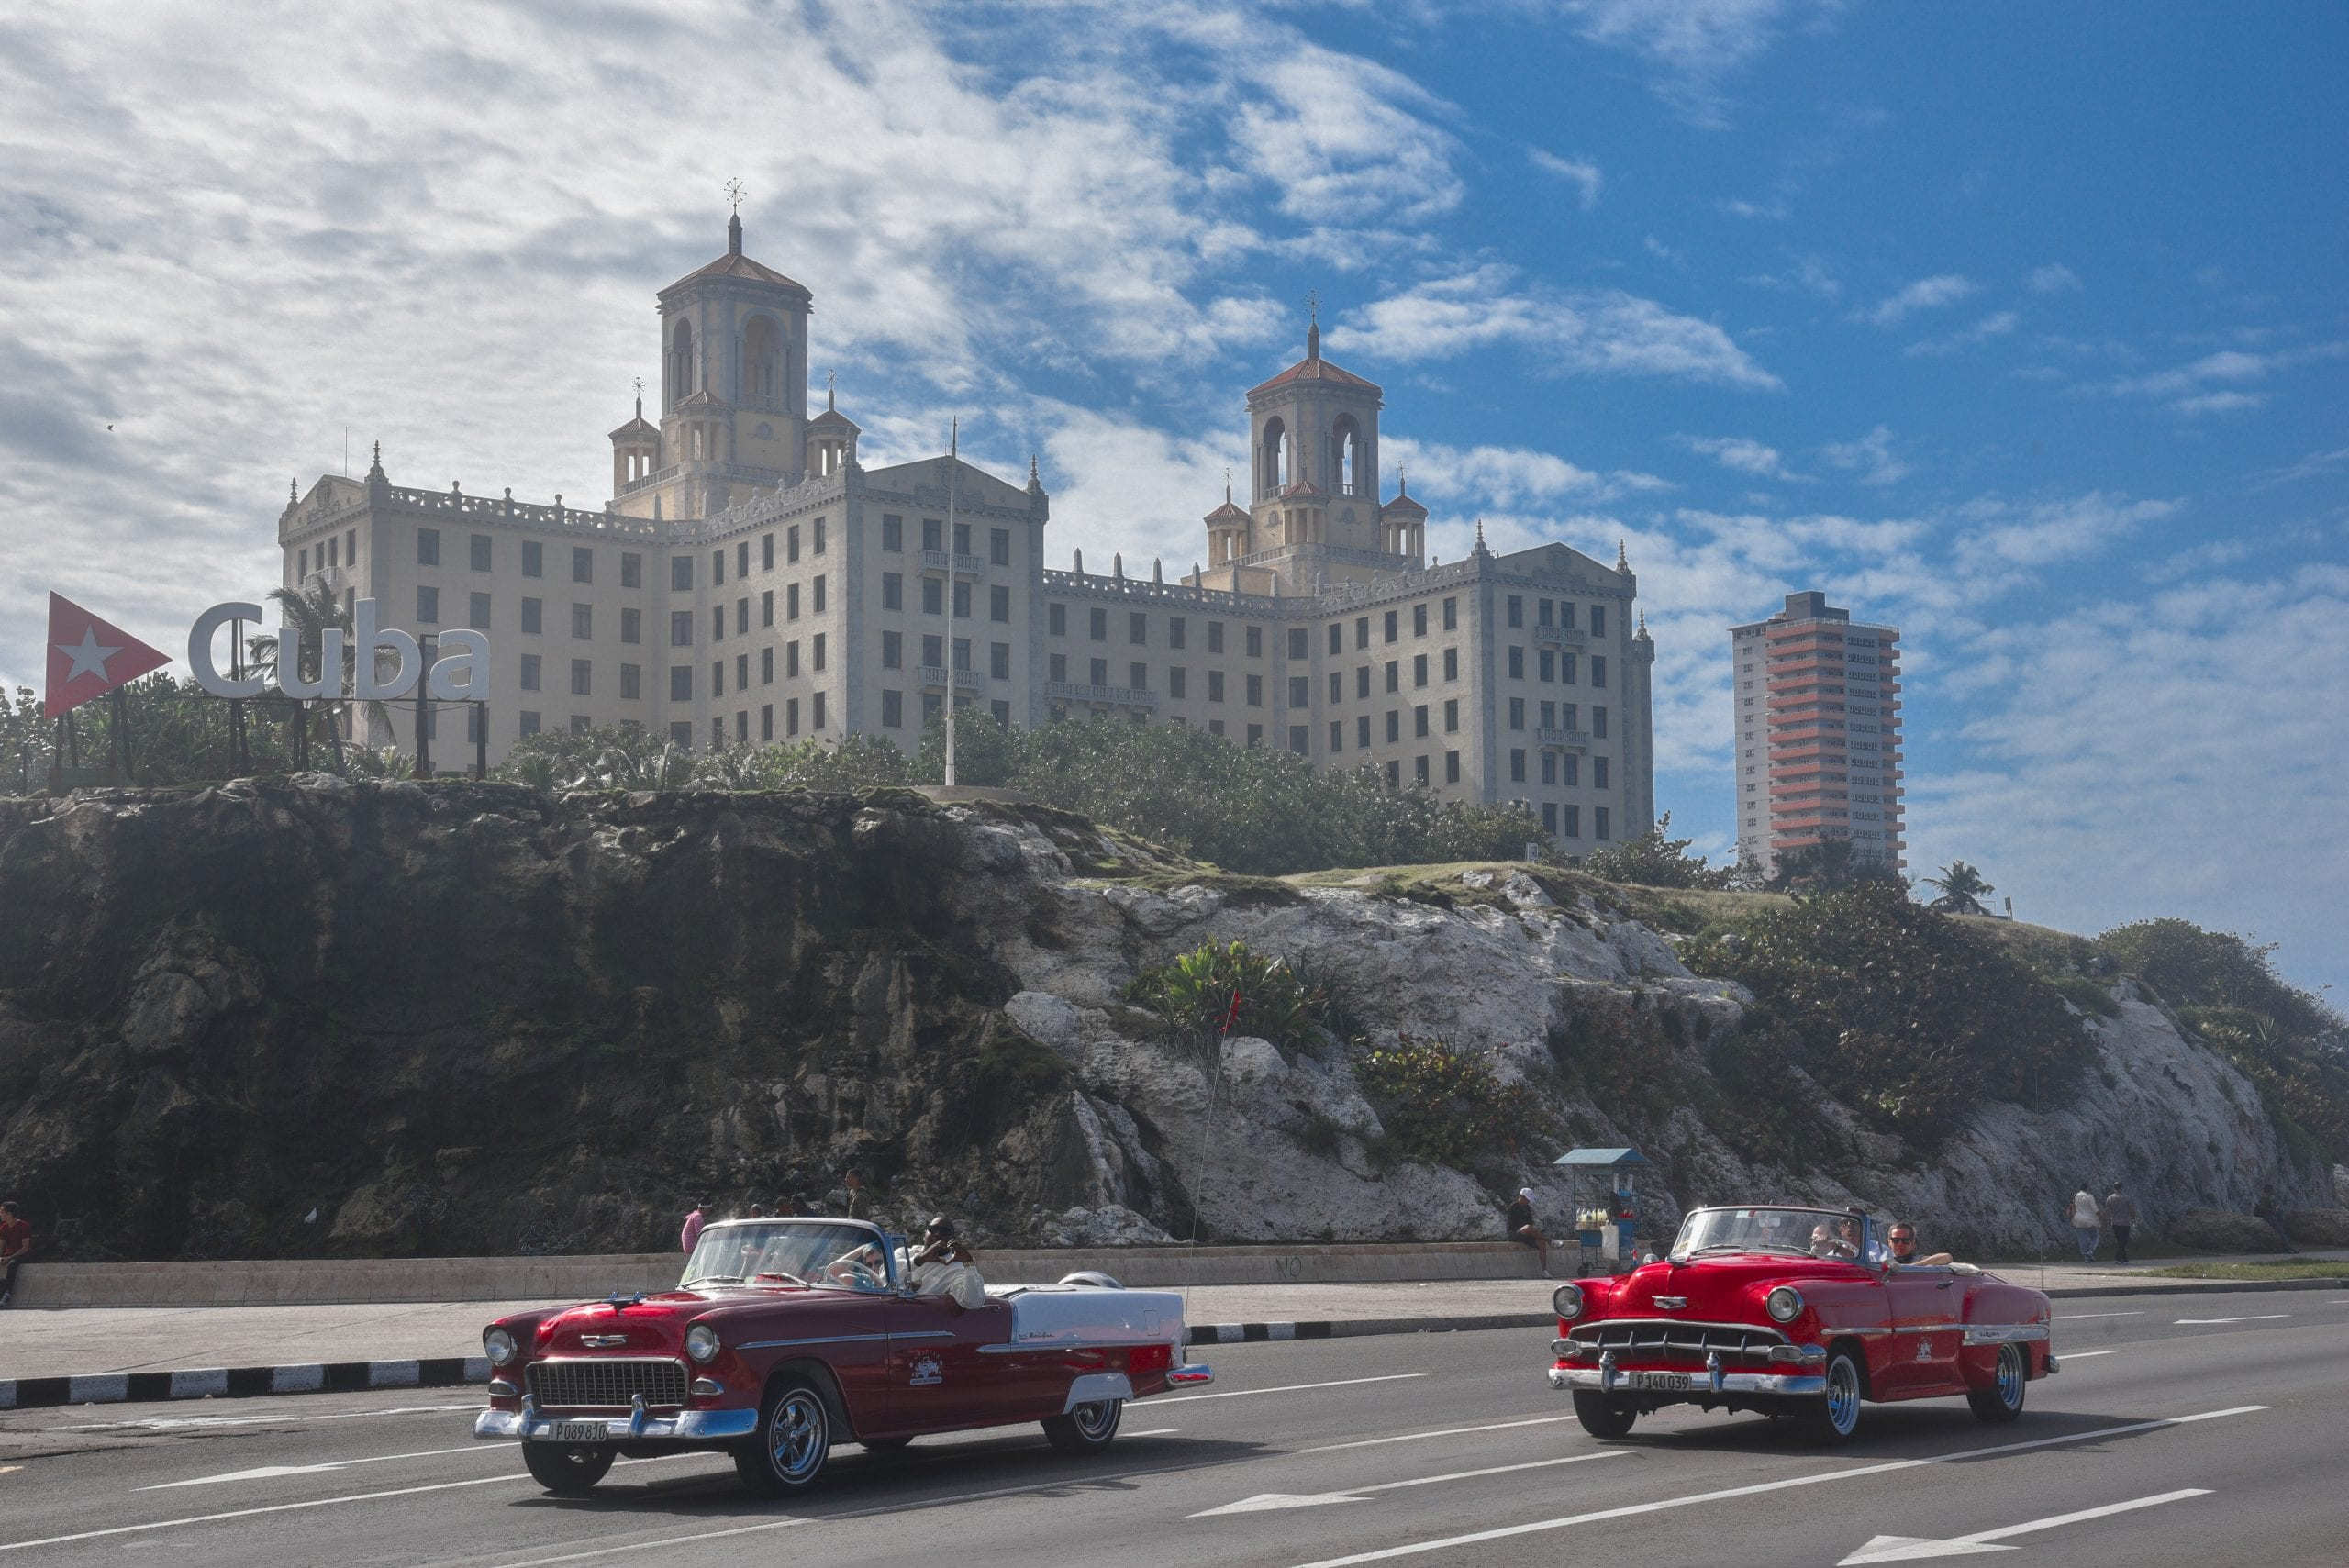 things-to-do-in-Havana-cuba-hotel-things-to-do-in-havana-cuba-hotel-Nacional